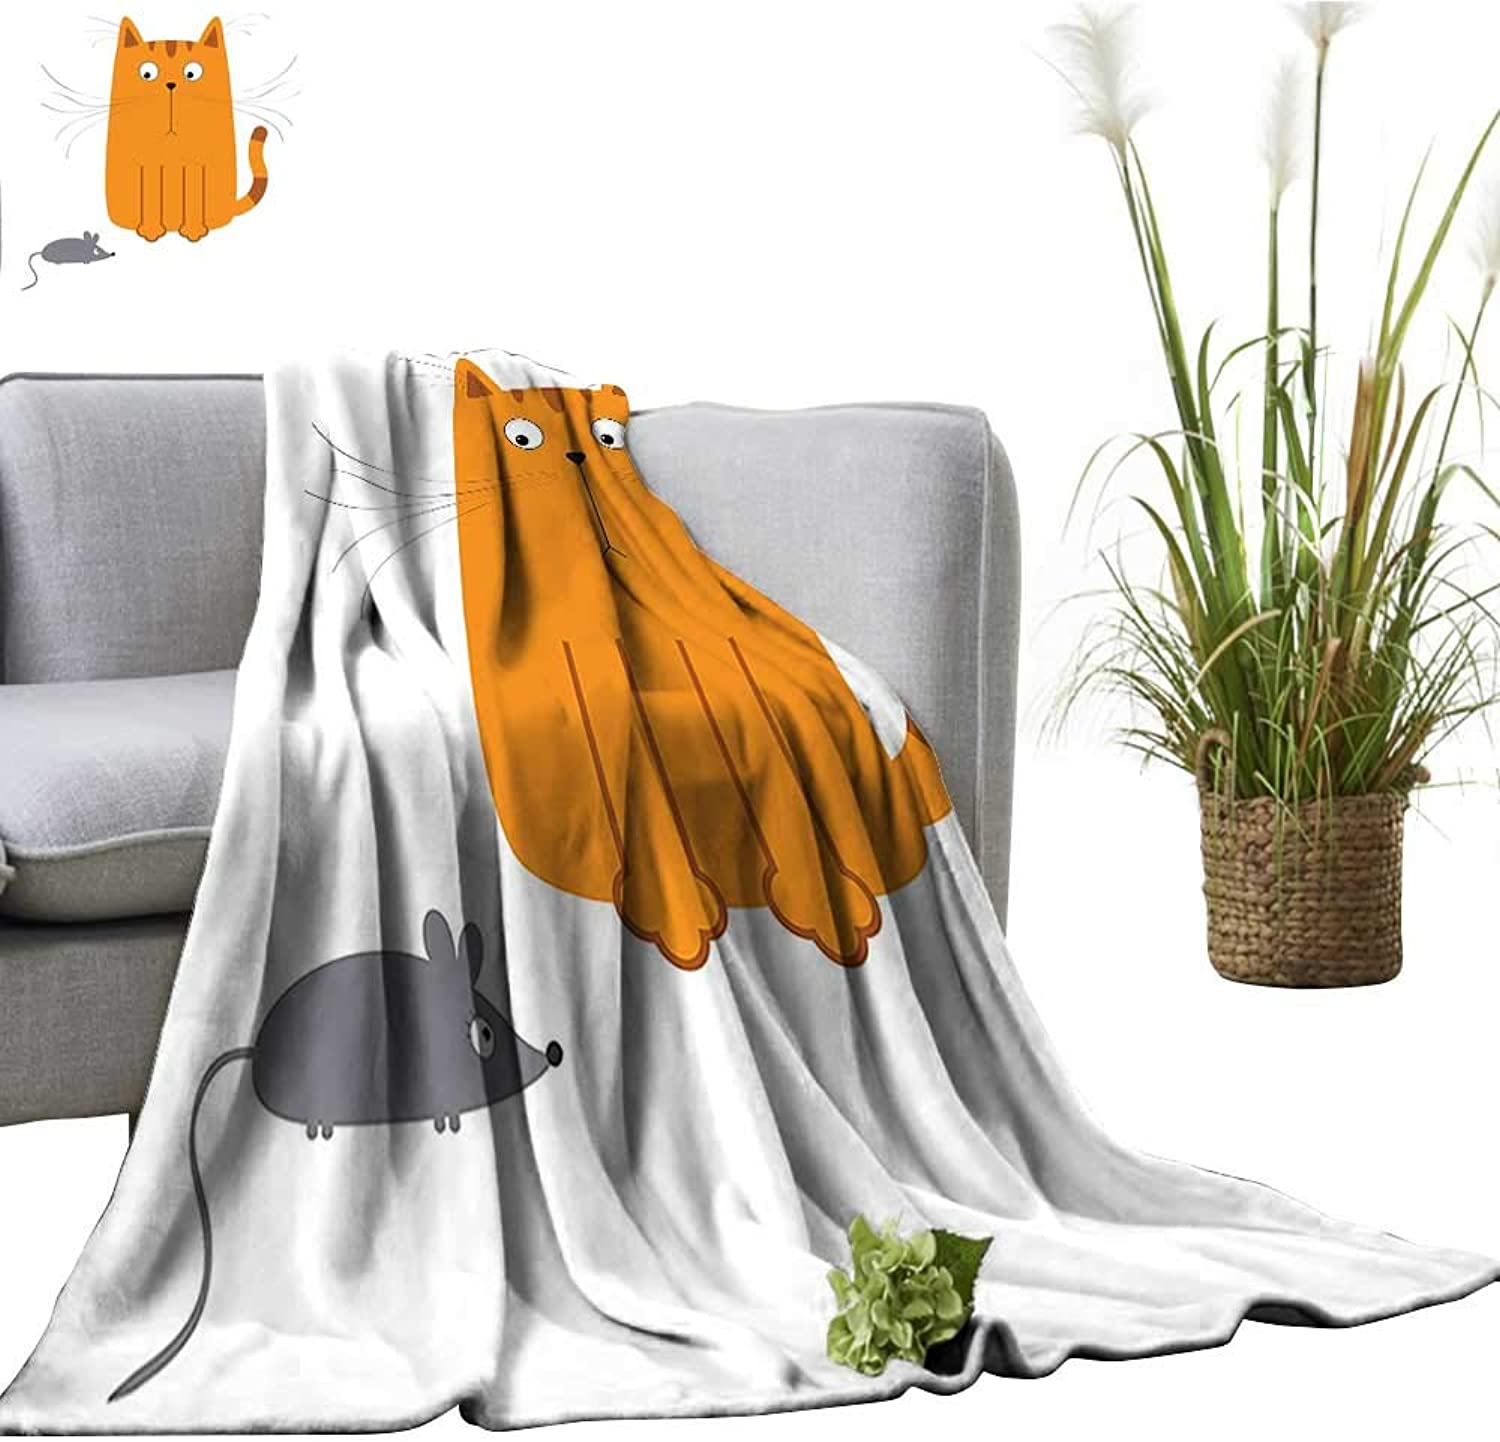 YOYI Super Soft Blanket Cat Looking at Mouse Hunter Kitty Fun Humor Kids Animal Graphic Art Print Bedsure Flannel 50 x70